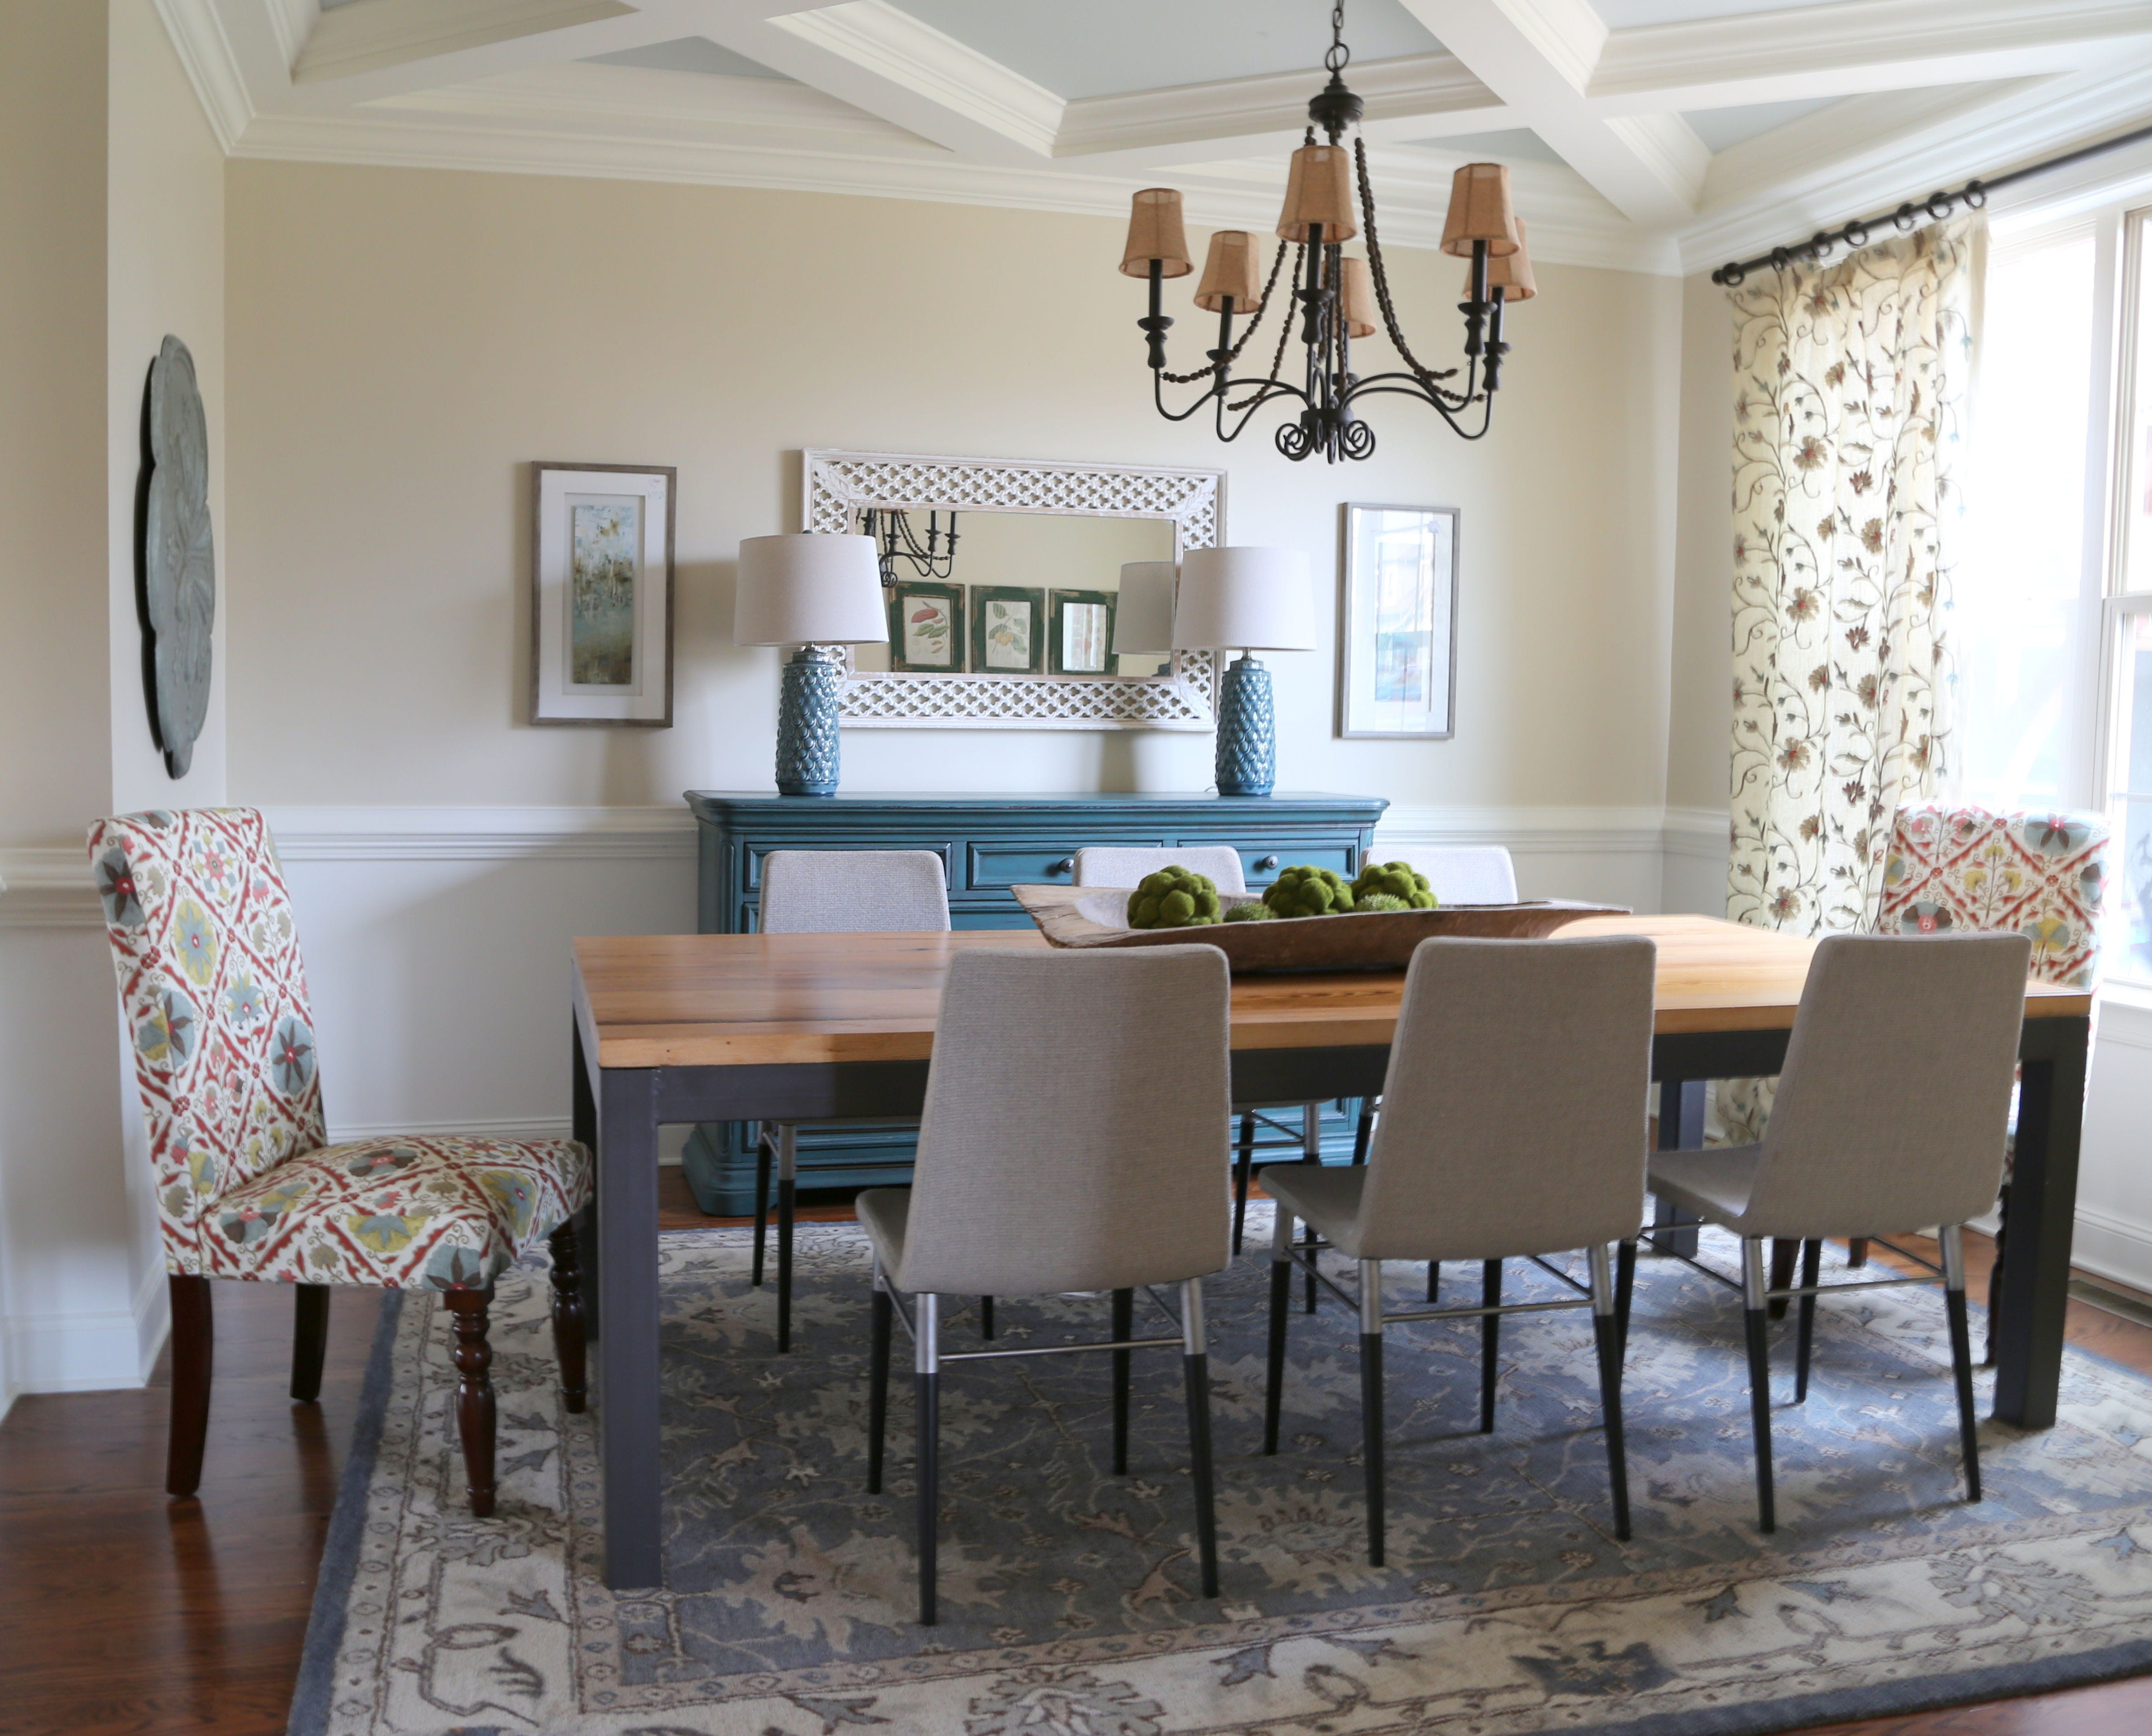 ... A Table And Matching Chairs For The Dining Room. Unmatched But  Coordinating Pieces Create A More Casual Feel. Table From Merridian Home  Furnishings, ...